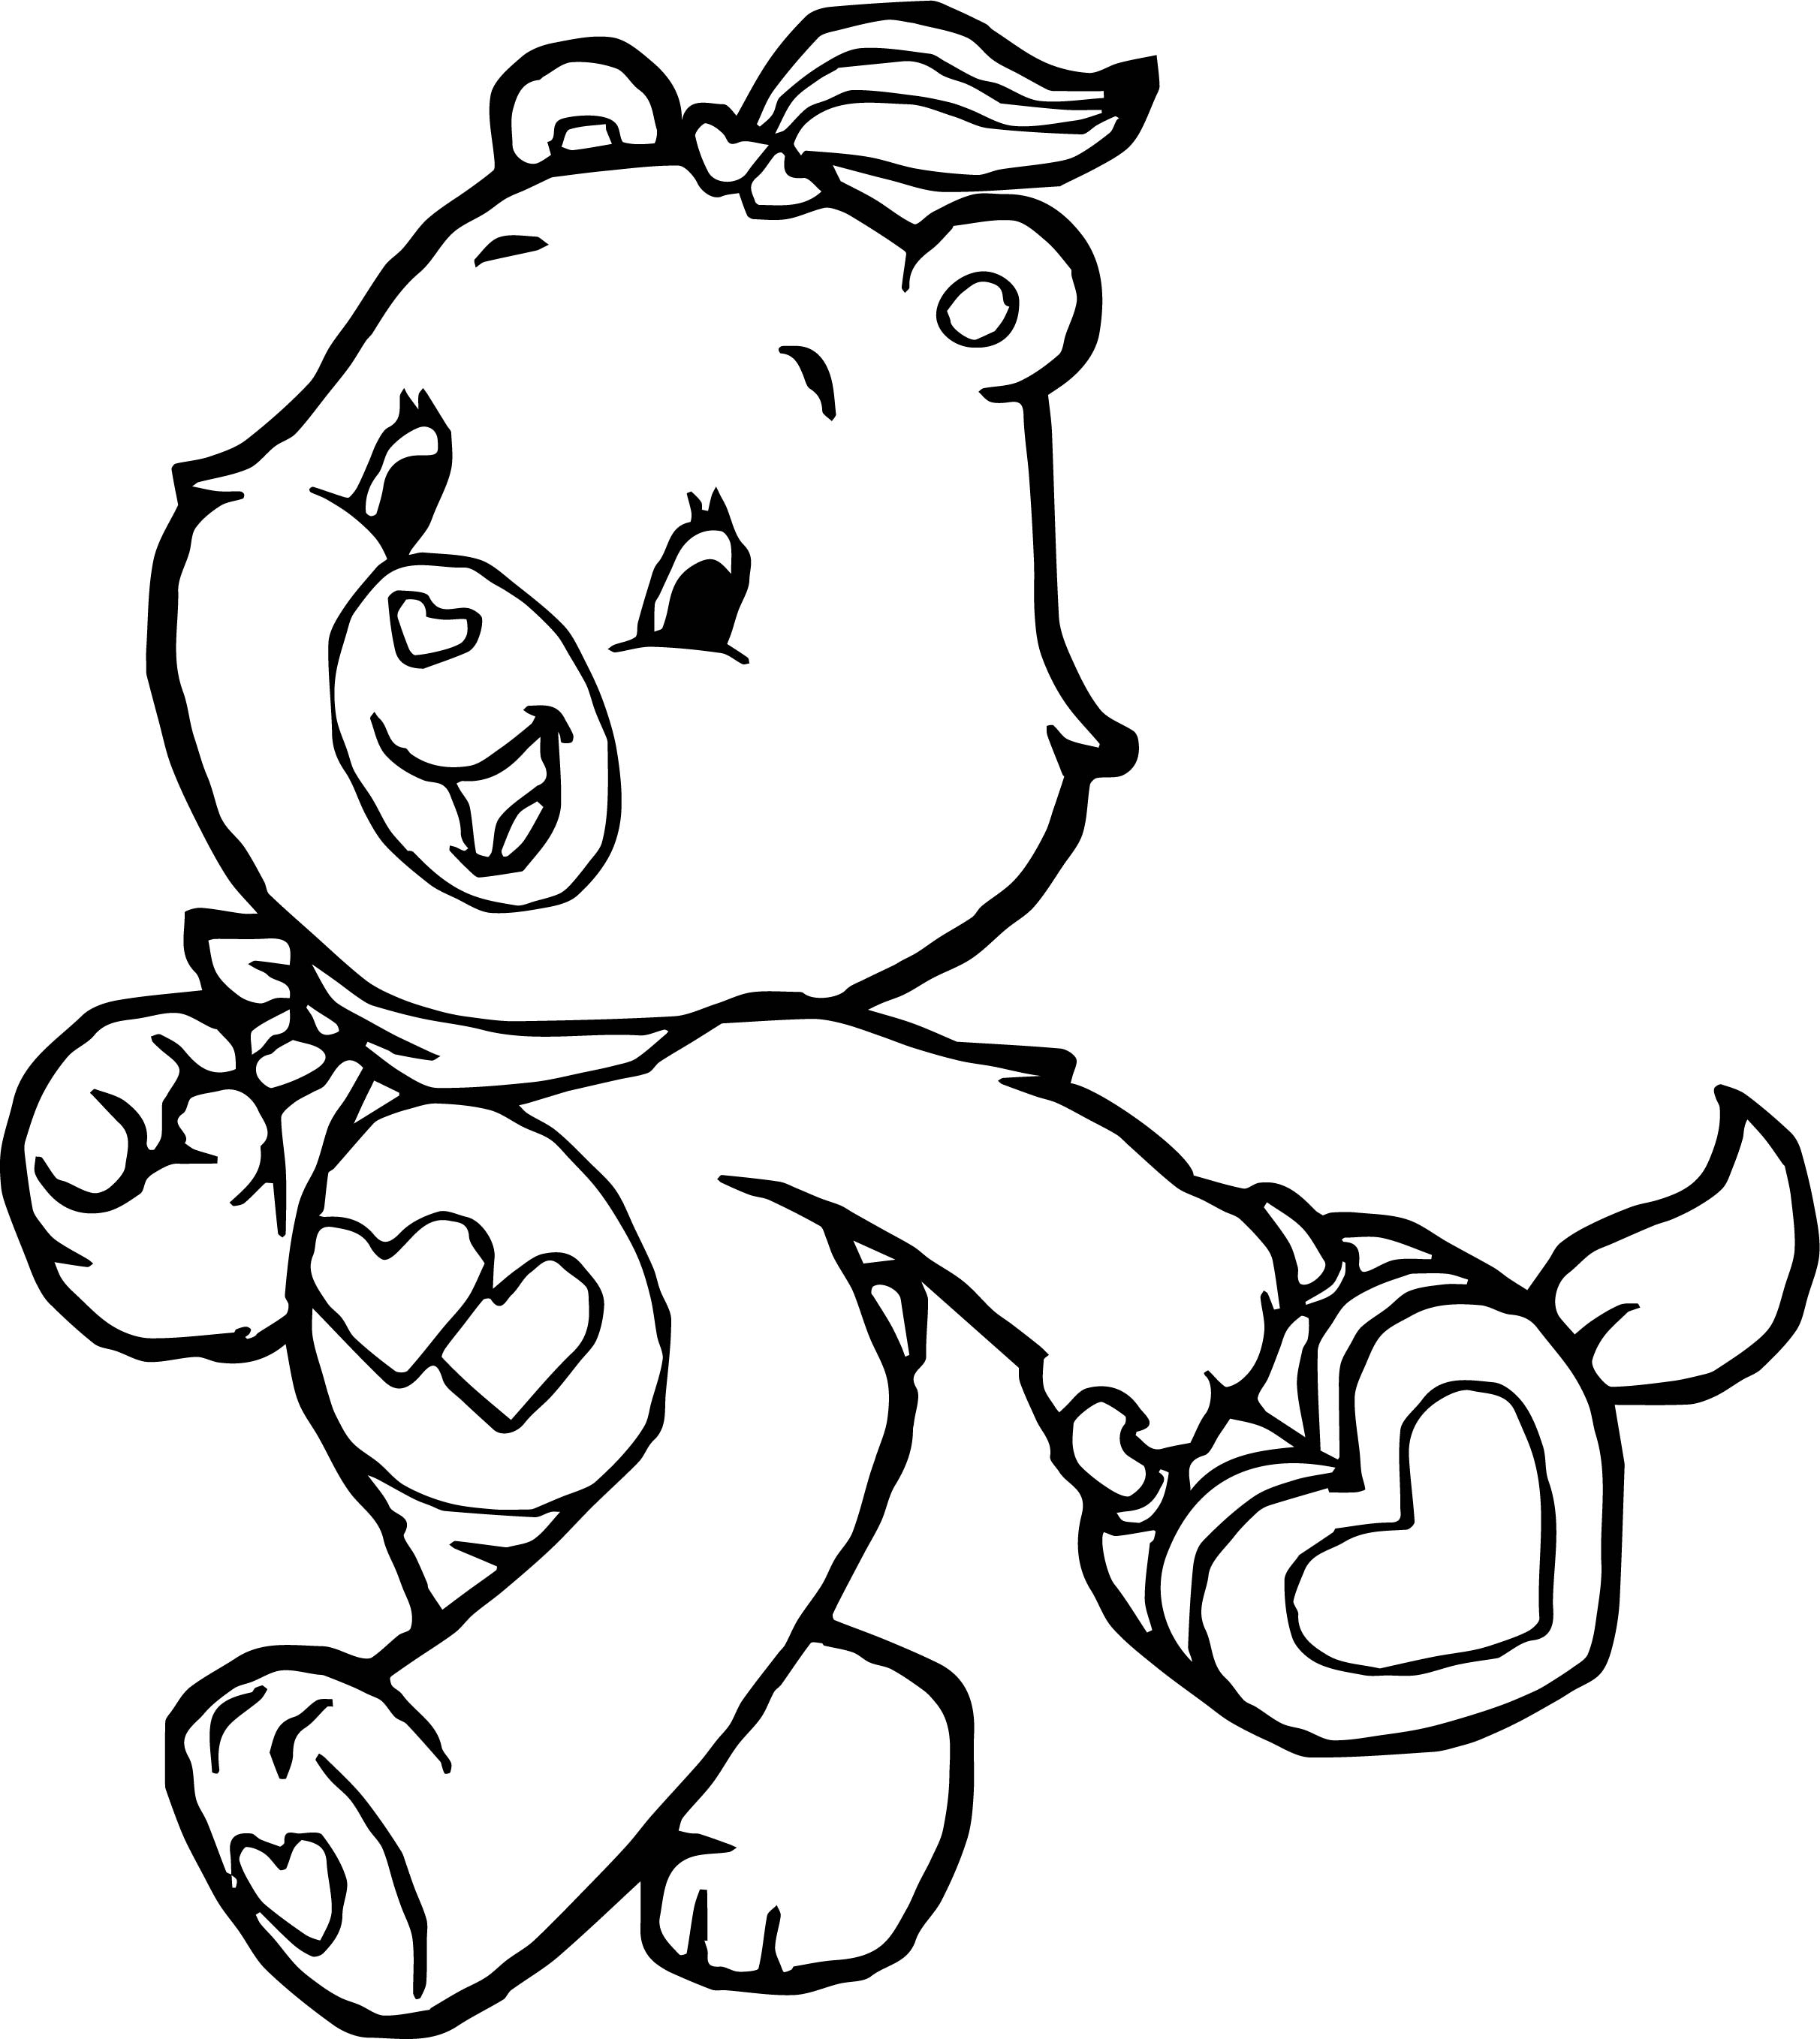 Bear With Heart Drawing at GetDrawings.com | Free for personal use ...